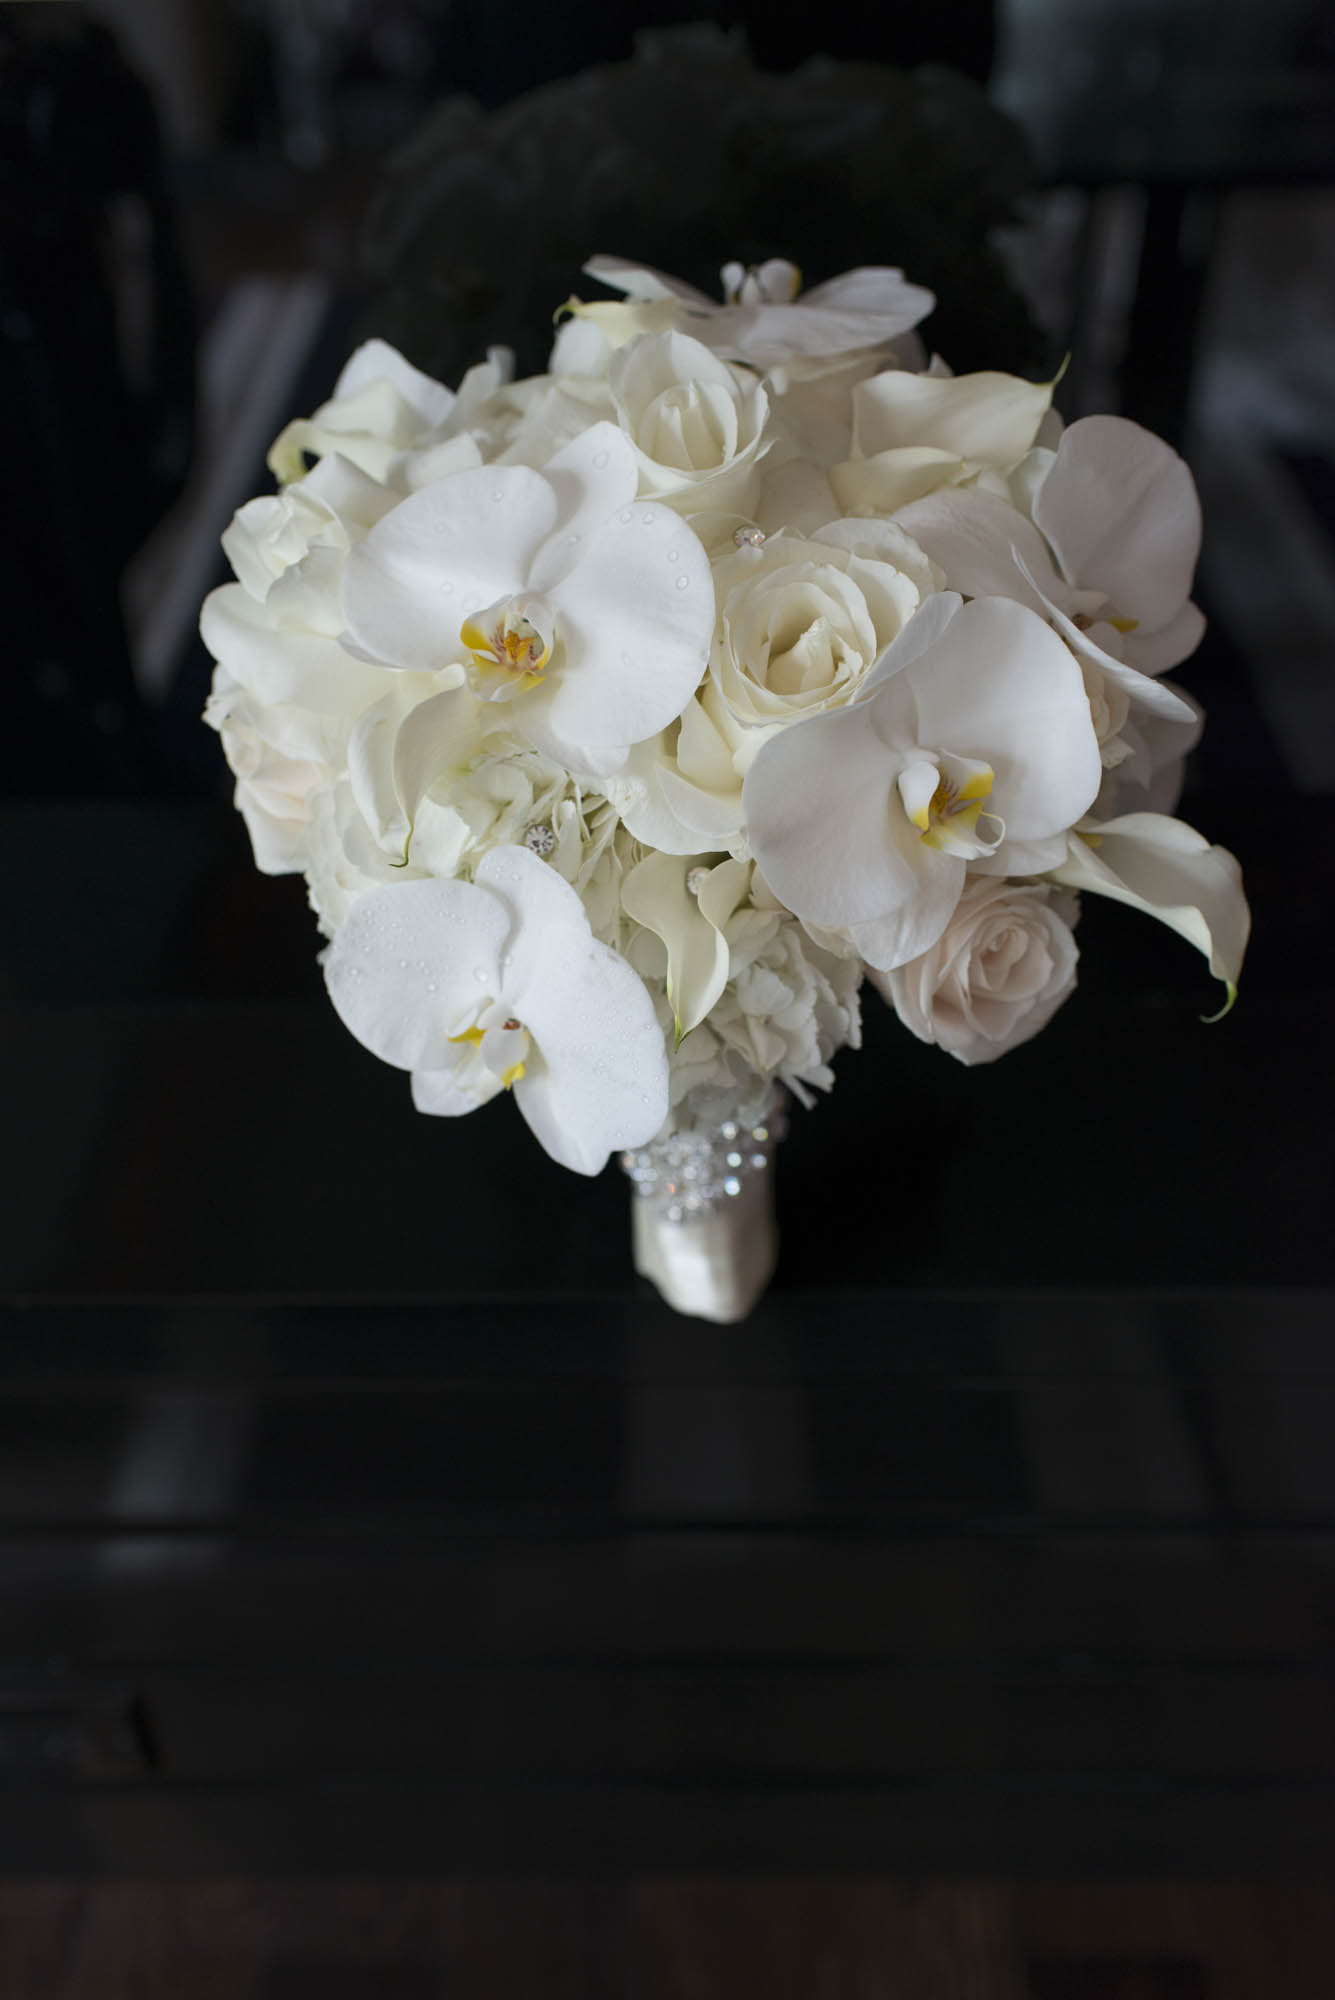 White Bridal Bouquet with orchids, hydrangea, and roses.    CREATIVE PARTNERS:    PHOTOGRAPHY •  AltF Photography  ,PLANNING •  Andrea Eppolito Events  ,FLORAL AND DECOR DESIGN •  Destinations by Design  ,VENUE AND CATERING •  Mandarin Oriental, Las Vegas  ,STATIONERY DESIGN •  Paper and Home  ,  BRIDE'S GOWN • Vera Wang ,SHOES • Jimmy Choo ,  GROOM'S FORMAL WEAR •  Vera Wang  ,  ENGAGEMENT RING • Delage Jewelers ,  WEDDING BANDS • T-Birds Jewels   ,  CAKE DESIGN • Mandarin Oriental Las Vegas , DRAPING;  DANCE FLOOR DESIGN AND PRODUCTION • Destination by Design ,  LIVE EVENT ARTIST • Sam Day ,ENTERTAINMENT  • Lucky Devils Band ,CINEMATOGRAPHY • Something New